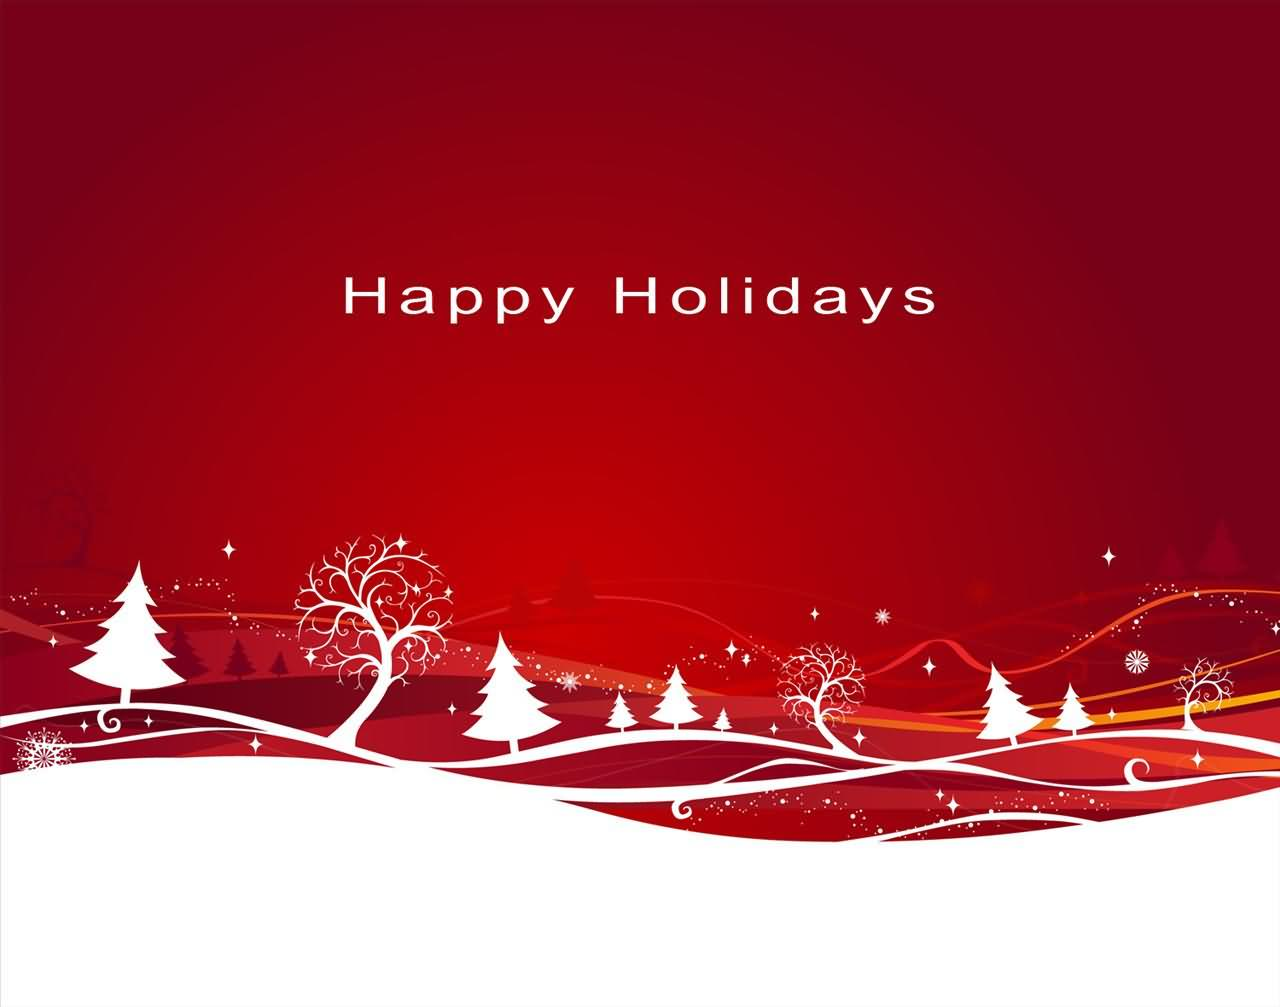 Happy Holidays Background Wallpaper